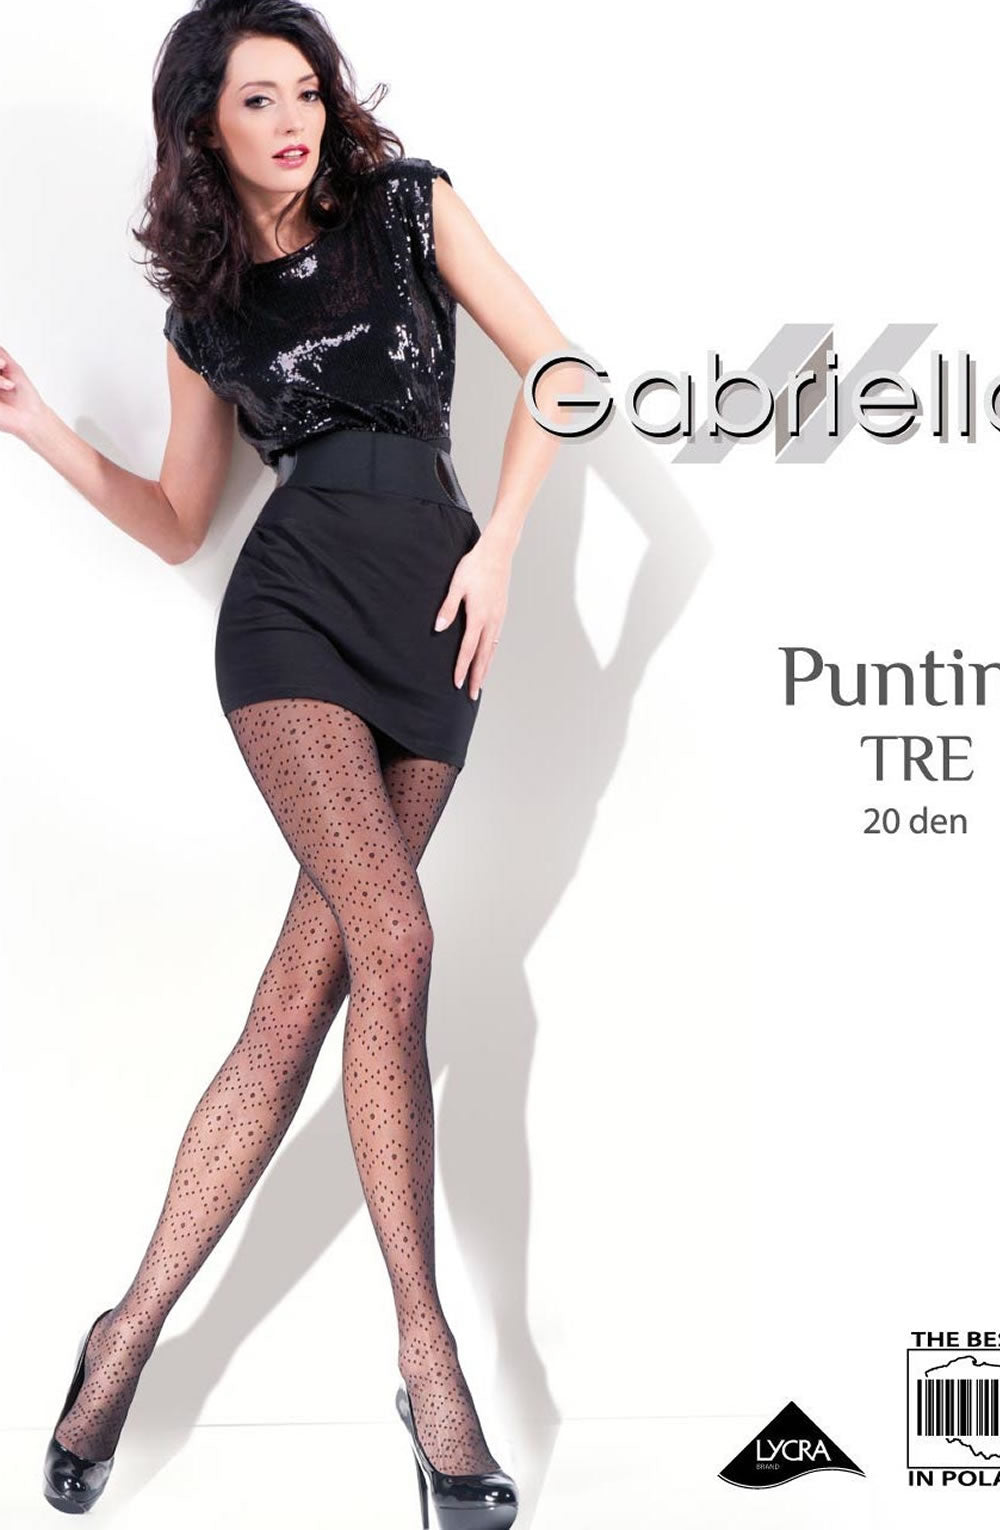 Gabriella Fantasia Putina Tre Tights Nero (Black)2